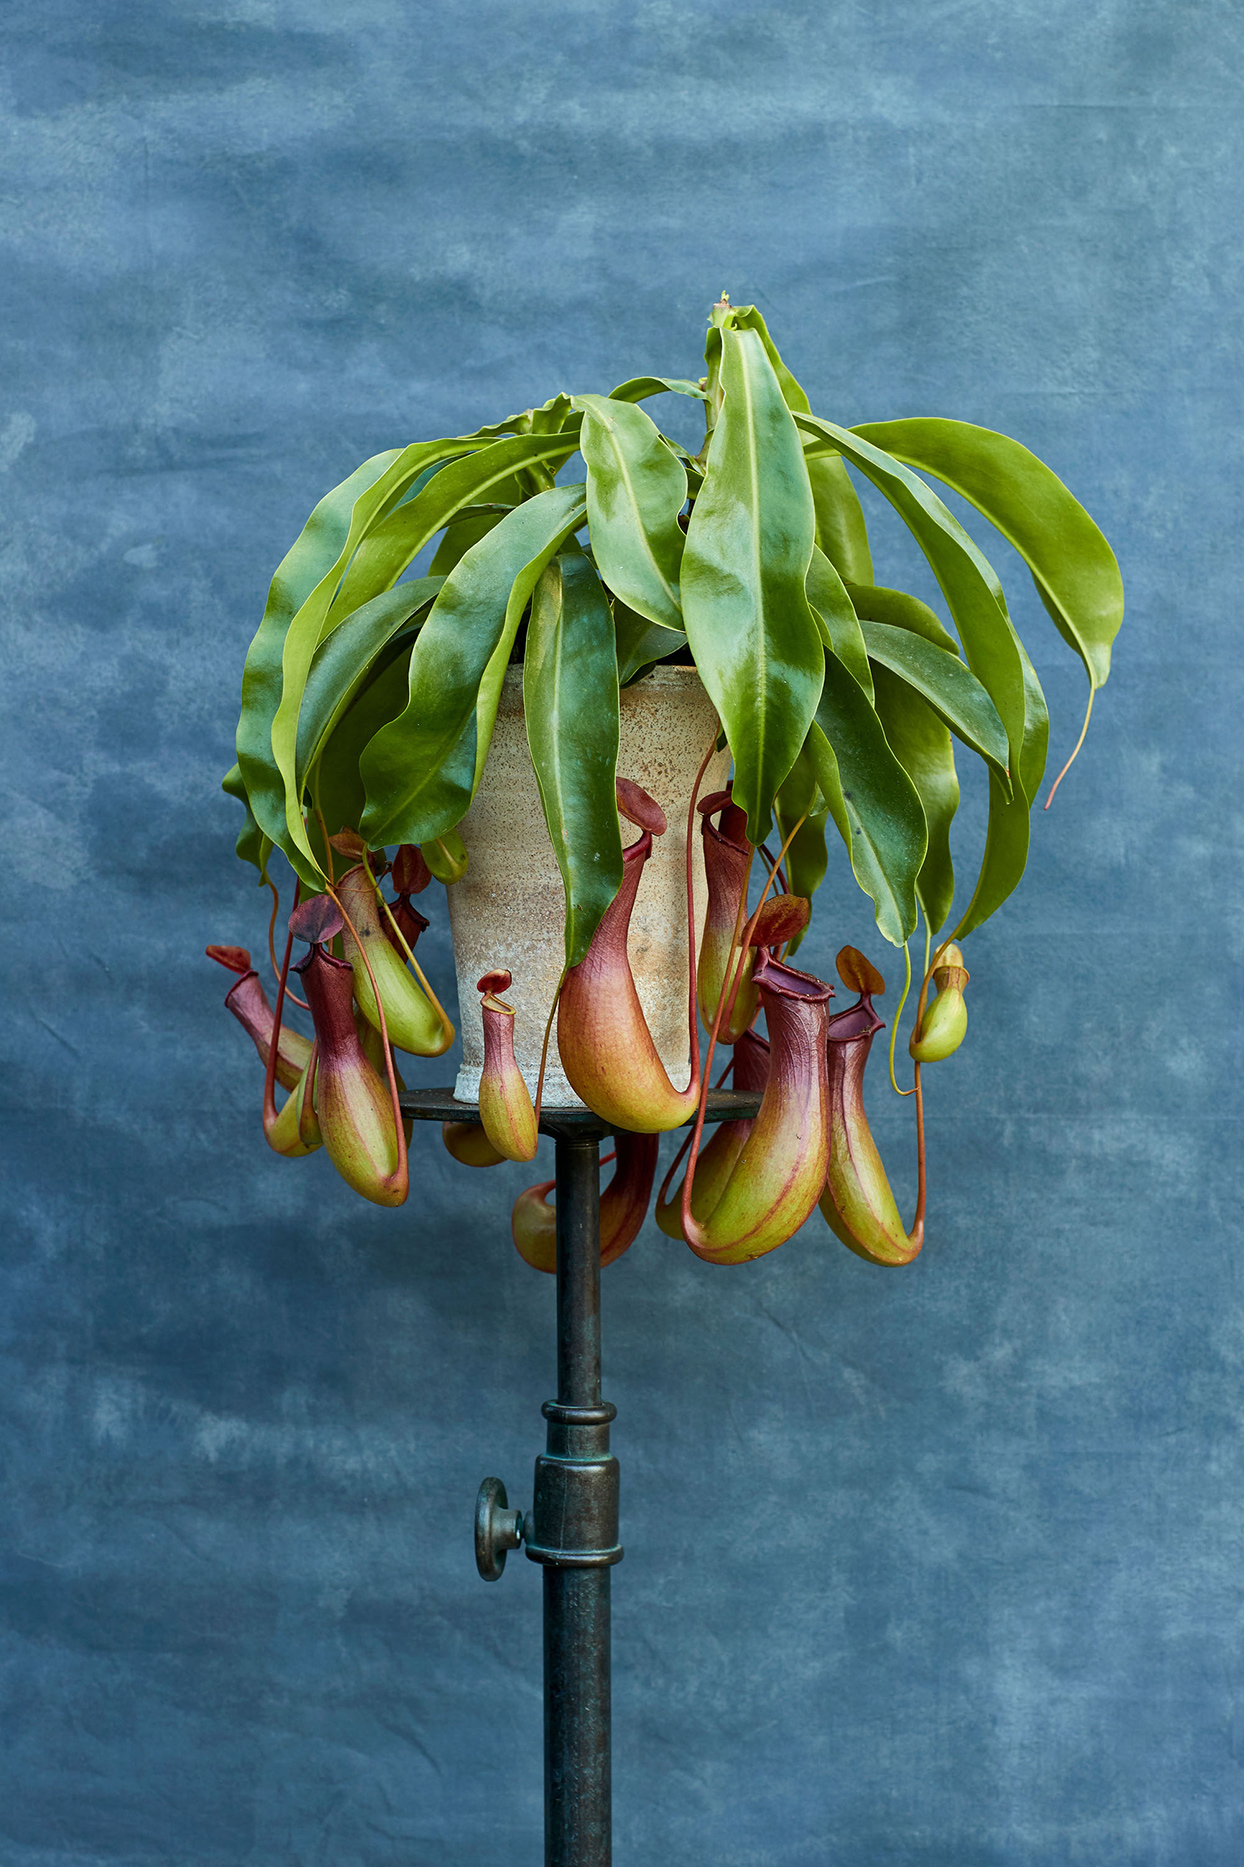 nepenthes alata plant against blue background